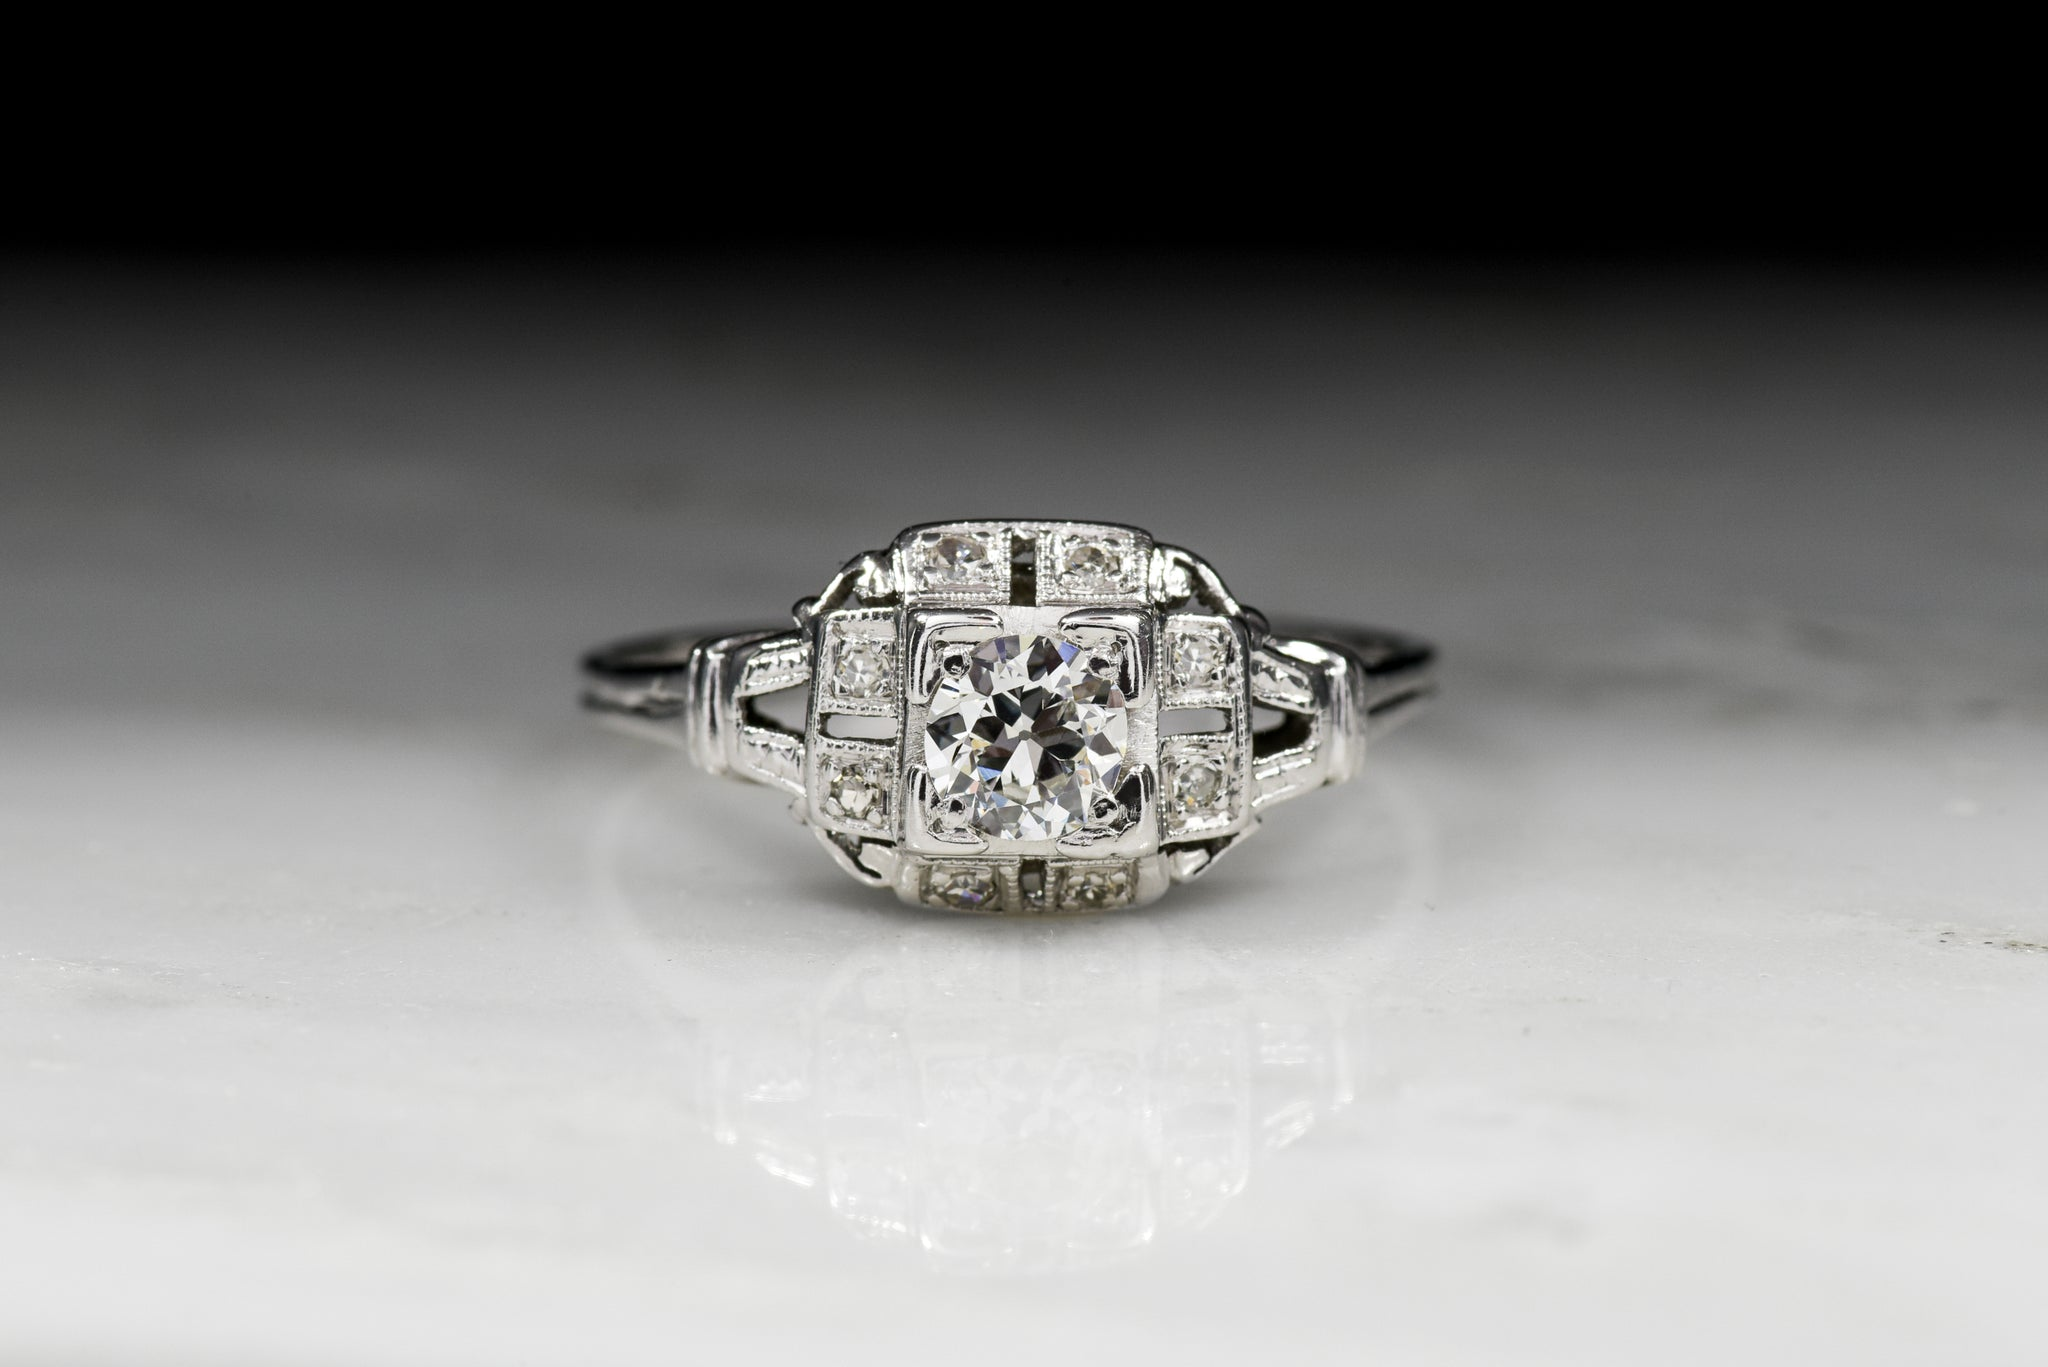 dsc diamond ways daimond ct rings engagement solitaire ring sz products vintage